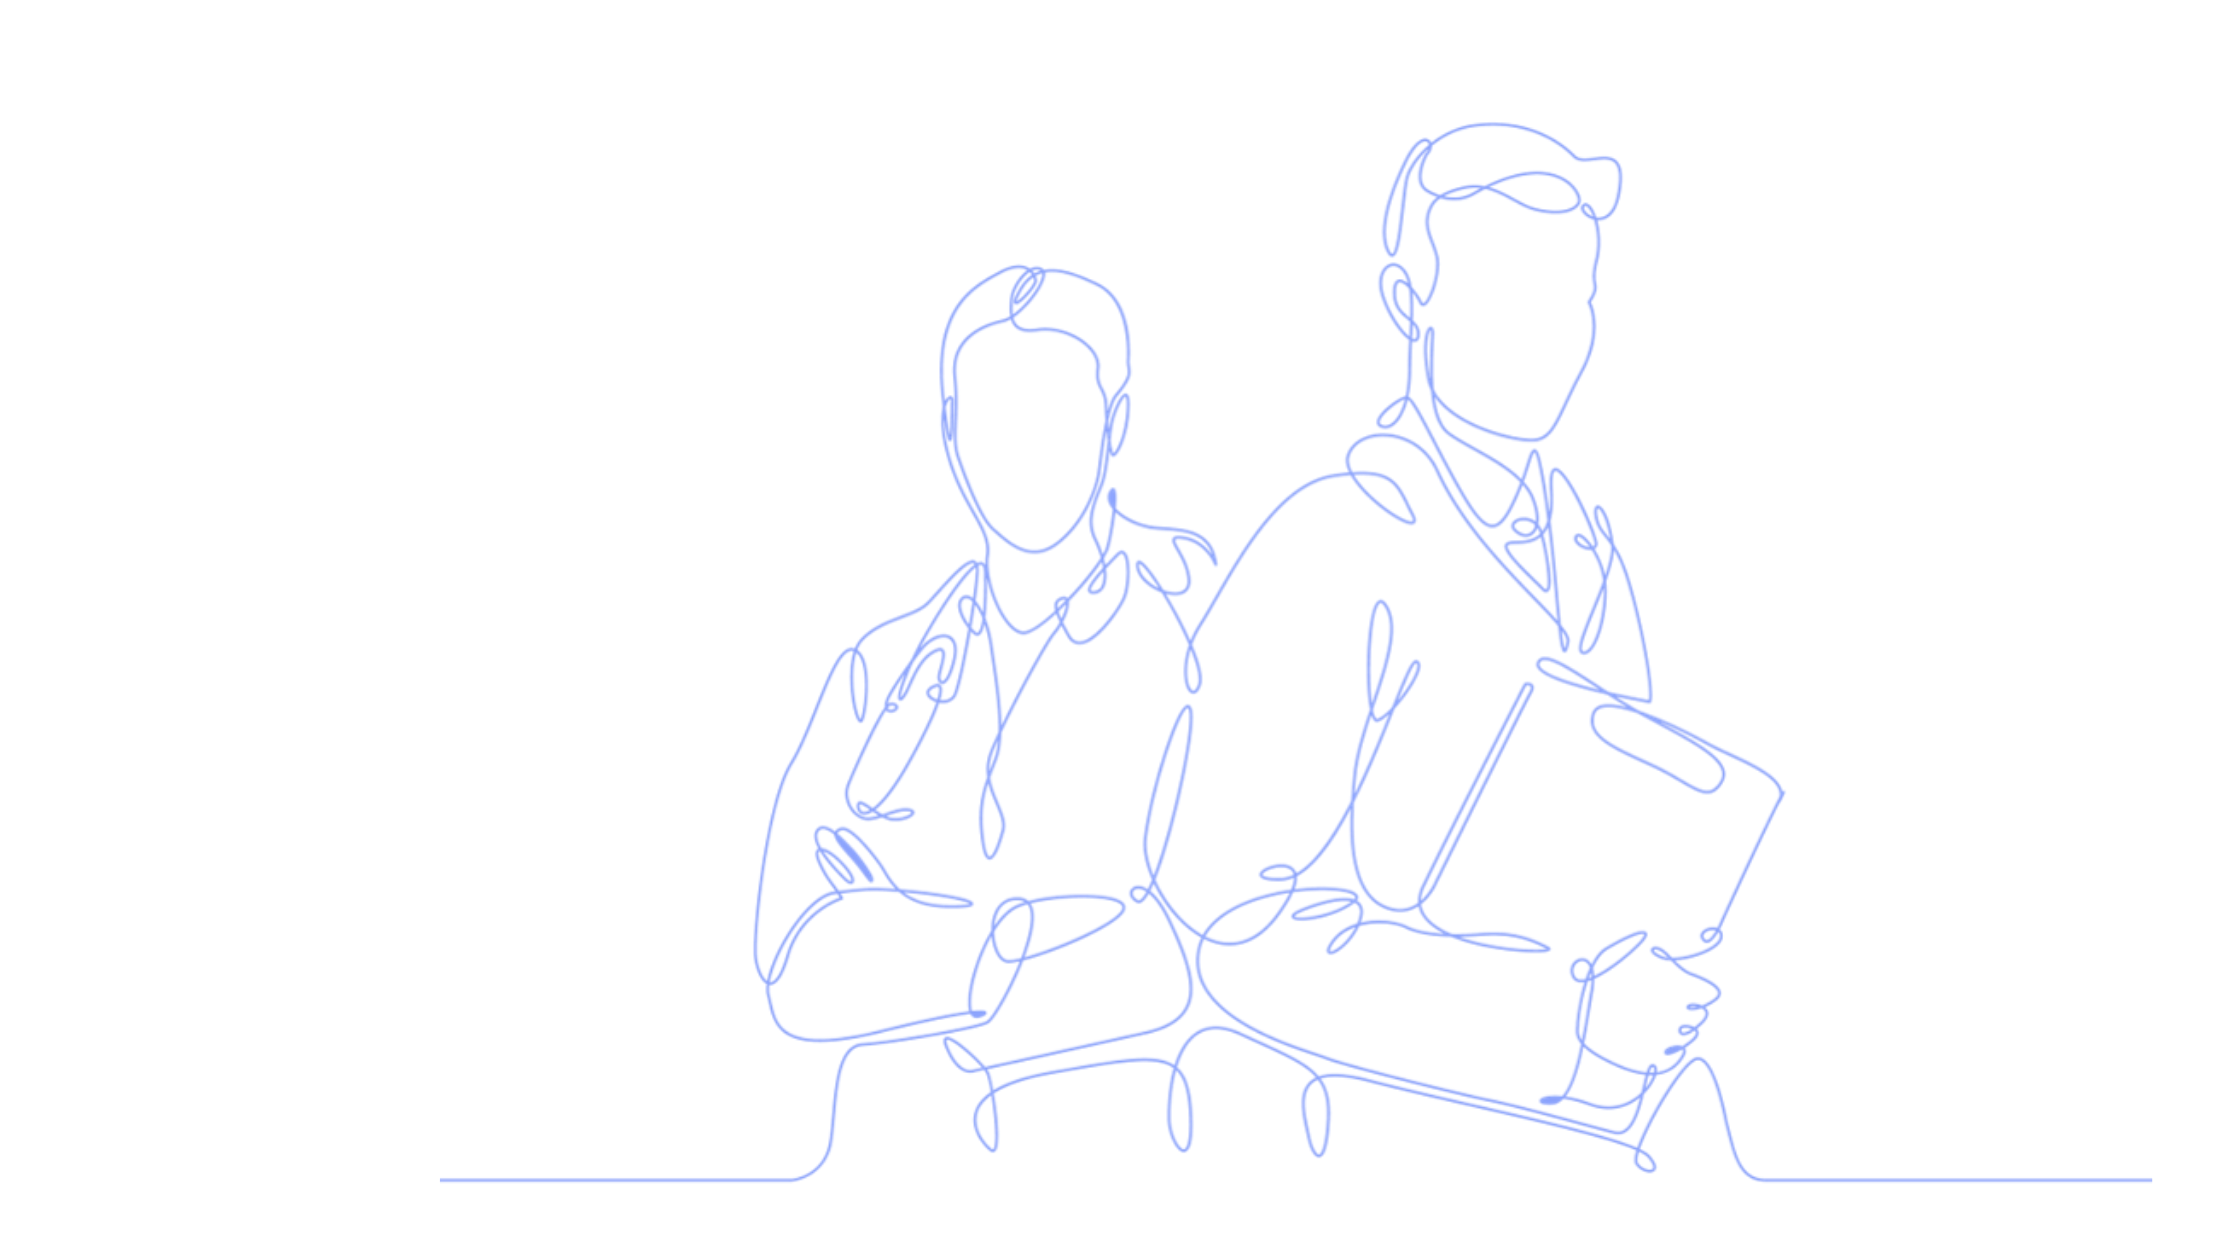 Line Art - Two HCPs